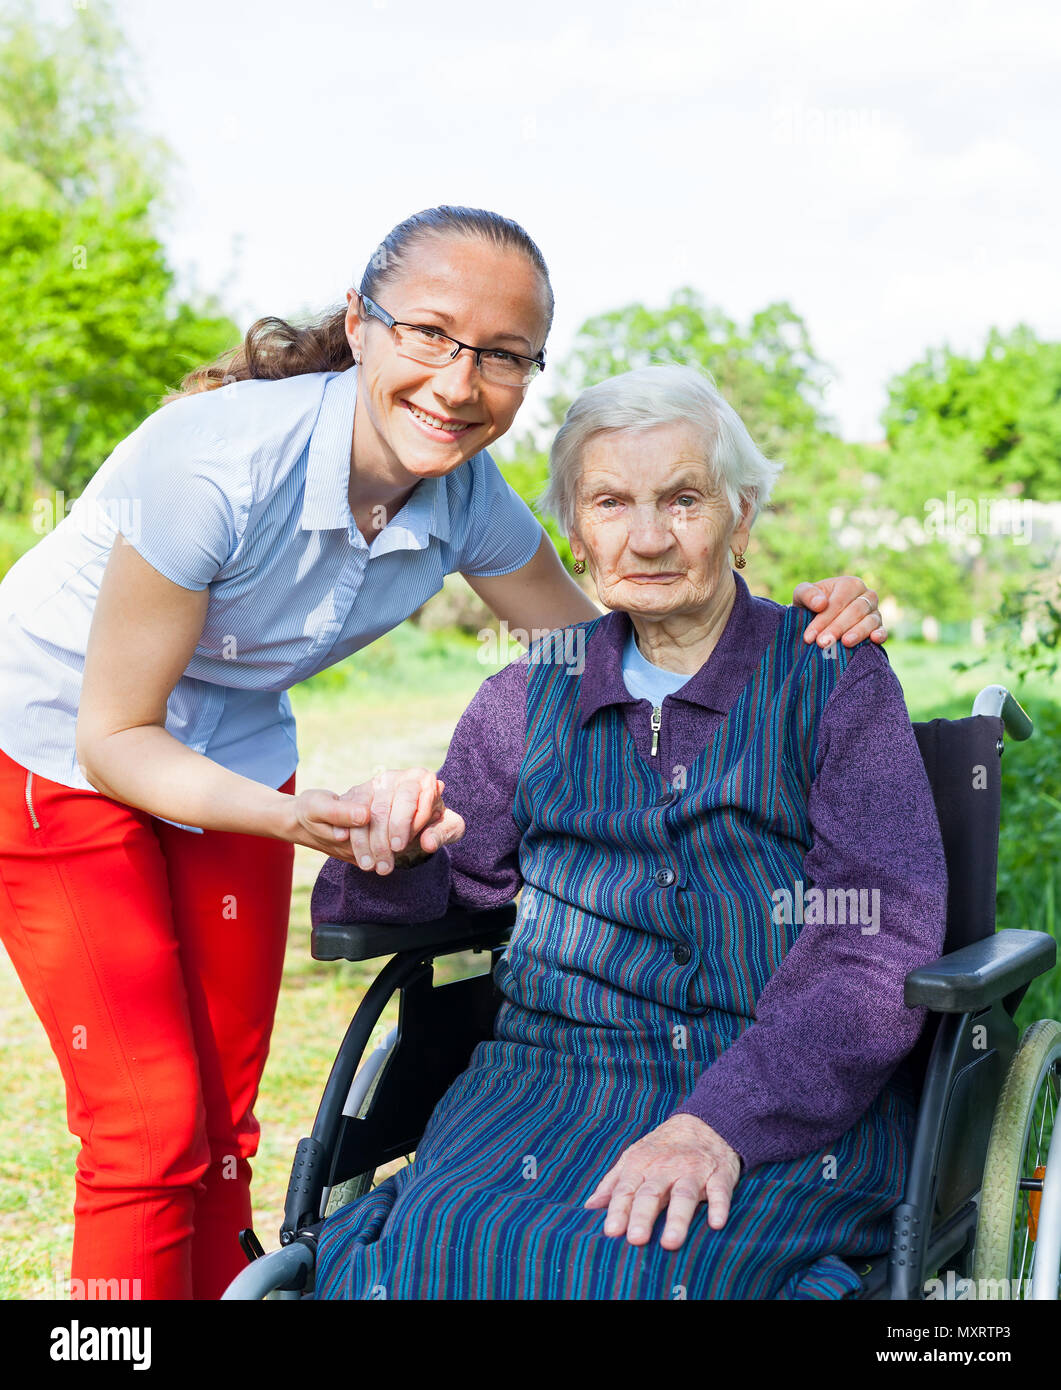 Handicapped elderly woman sitting in wheelchair with smiling caretaker outdoor - Stock Image